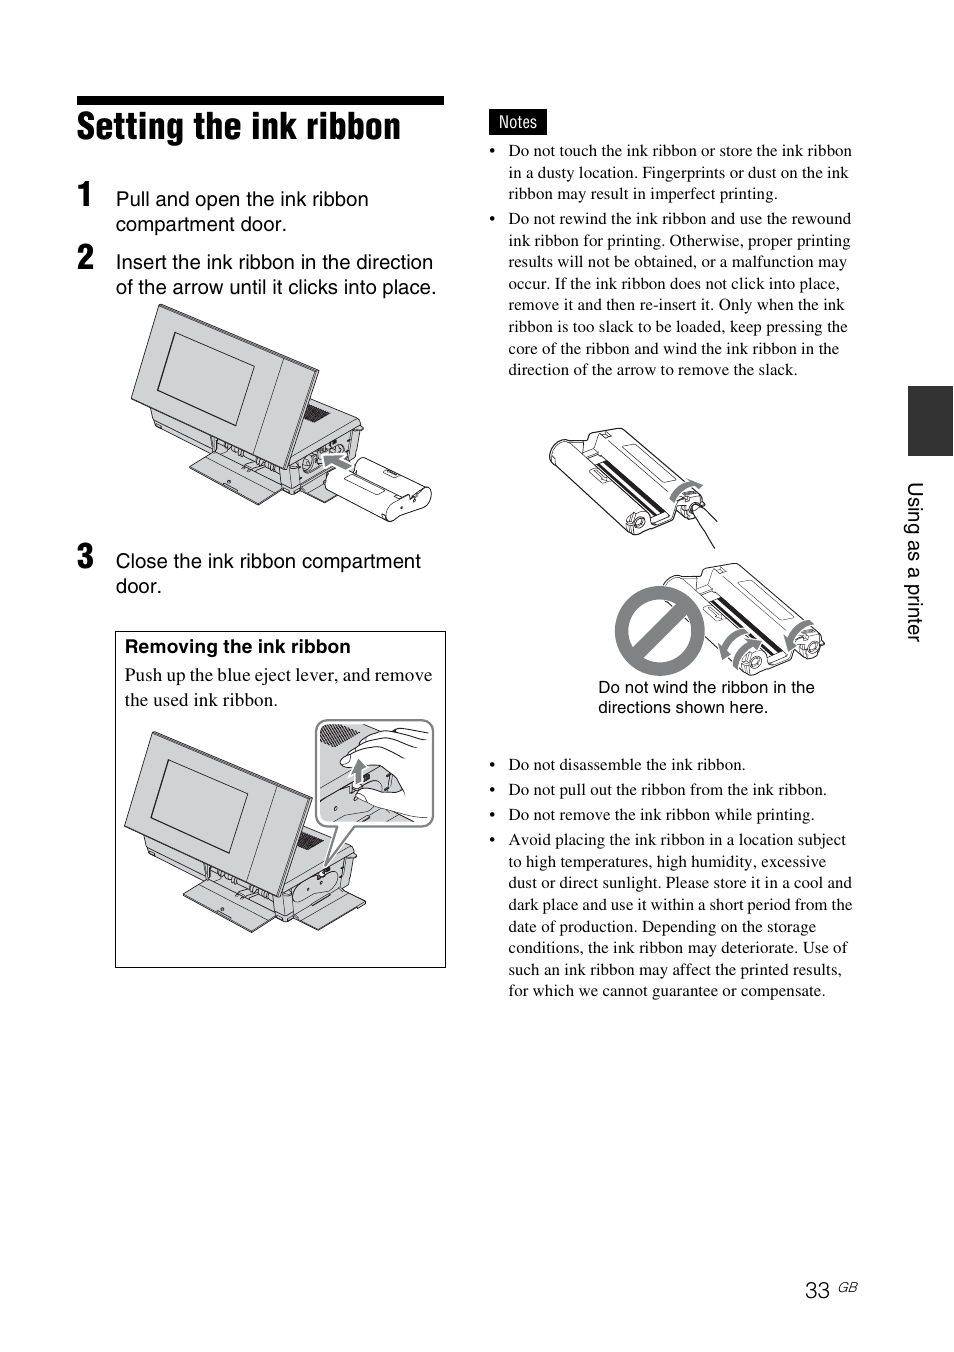 setting the ink ribbon sony dpp f700 user manual page 33 109 rh manualsdir com Sony User Manual Guide Sony Operating Manuals ICD-UX523